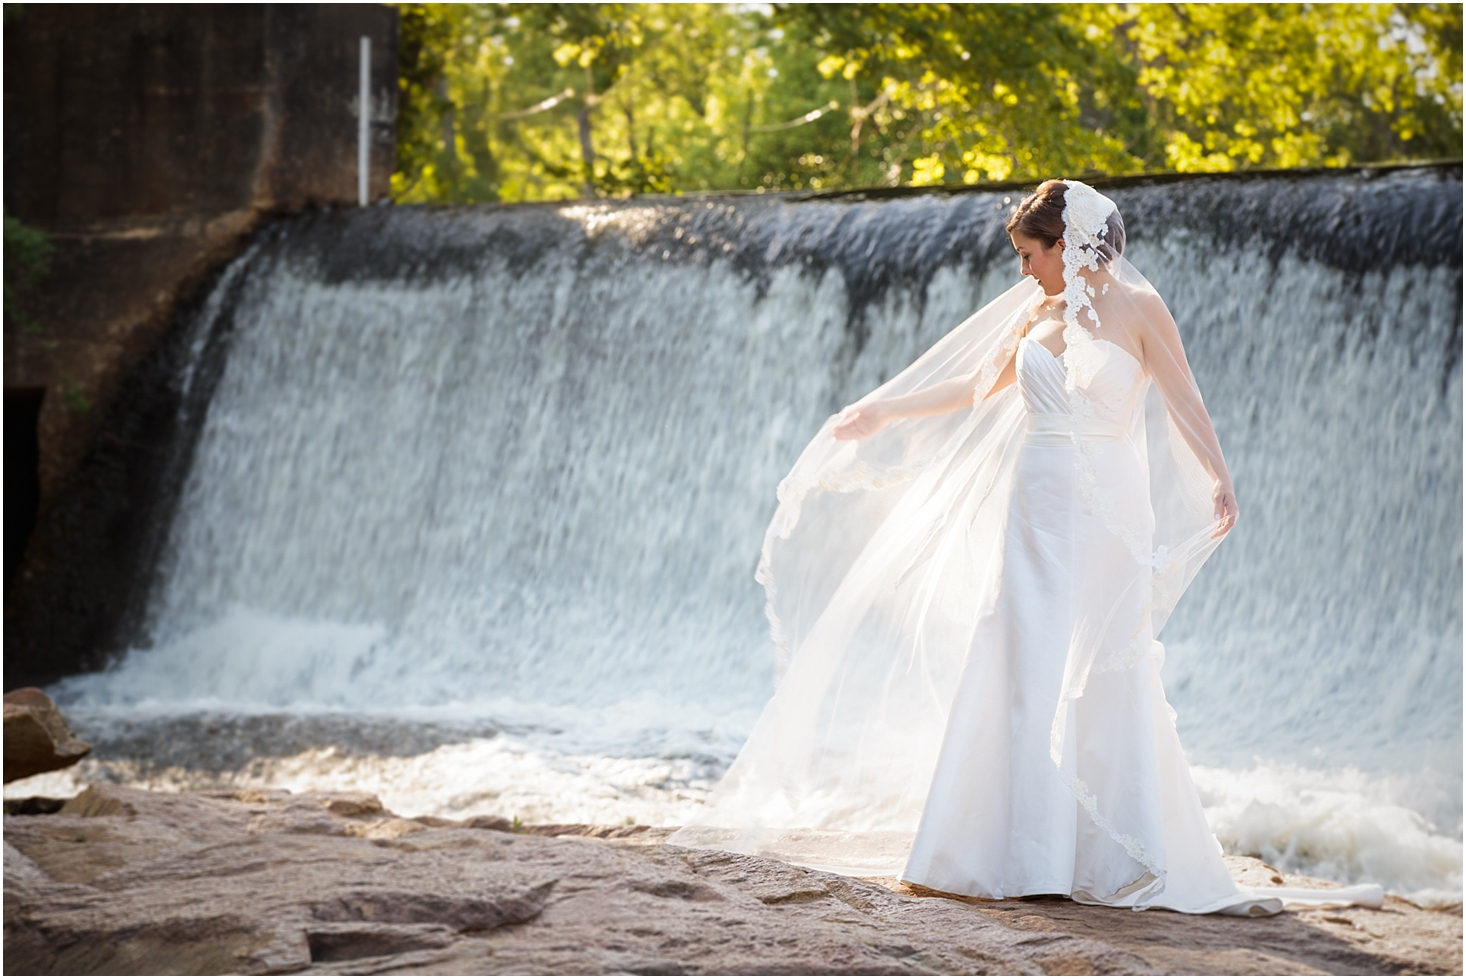 outdoor-bridal-session-spartanburg (20 of 21)_blog.jpg